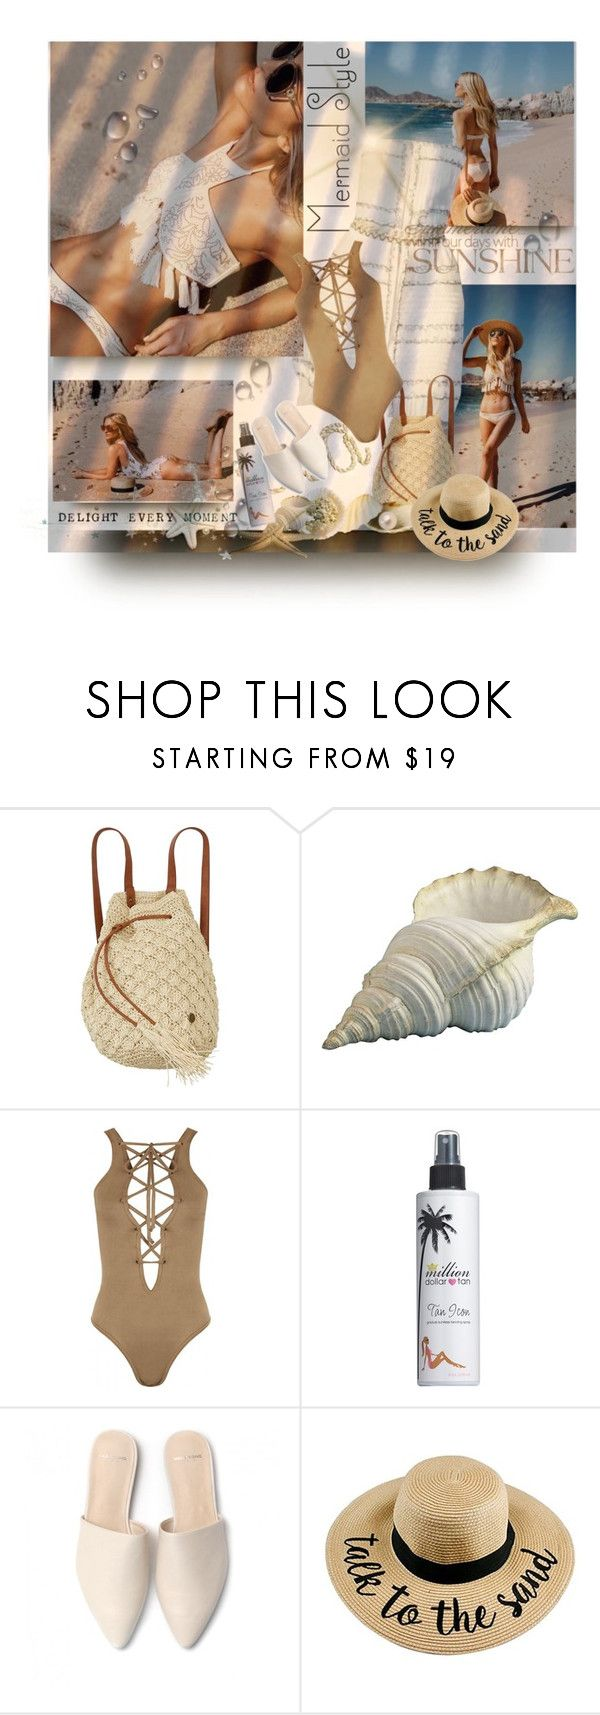 """Senza titolo #1899"" by barbara-gennari ❤ liked on Polyvore featuring Chanel, Billabong, WearAll and Million Dollar Tan"